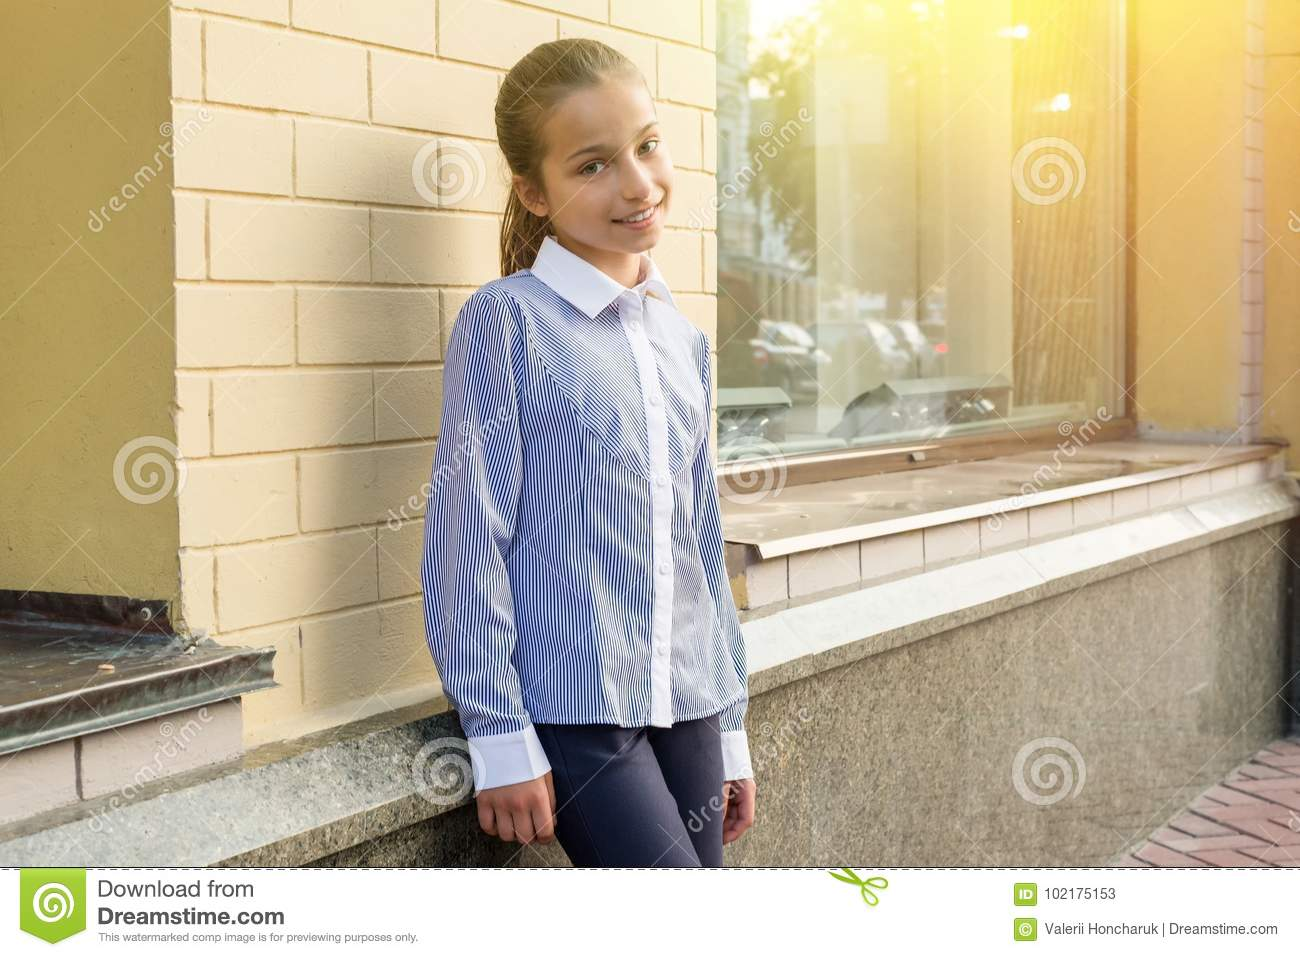 Download Portrait Of A Girl Of 10-11 Years Old. Stock Image - Image of casual, female: 102175153